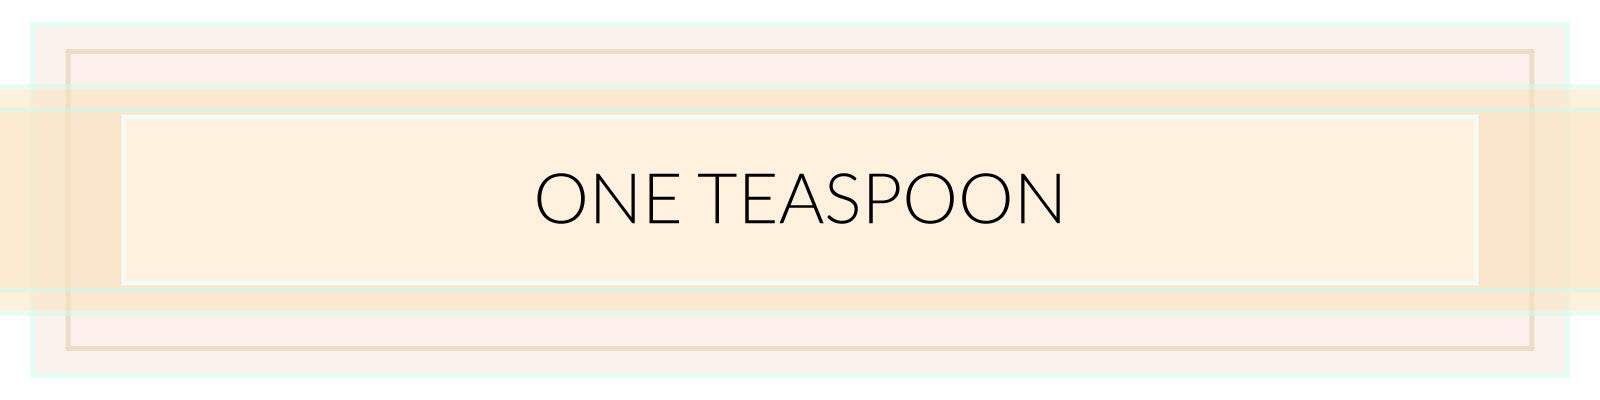 One Teaspoon